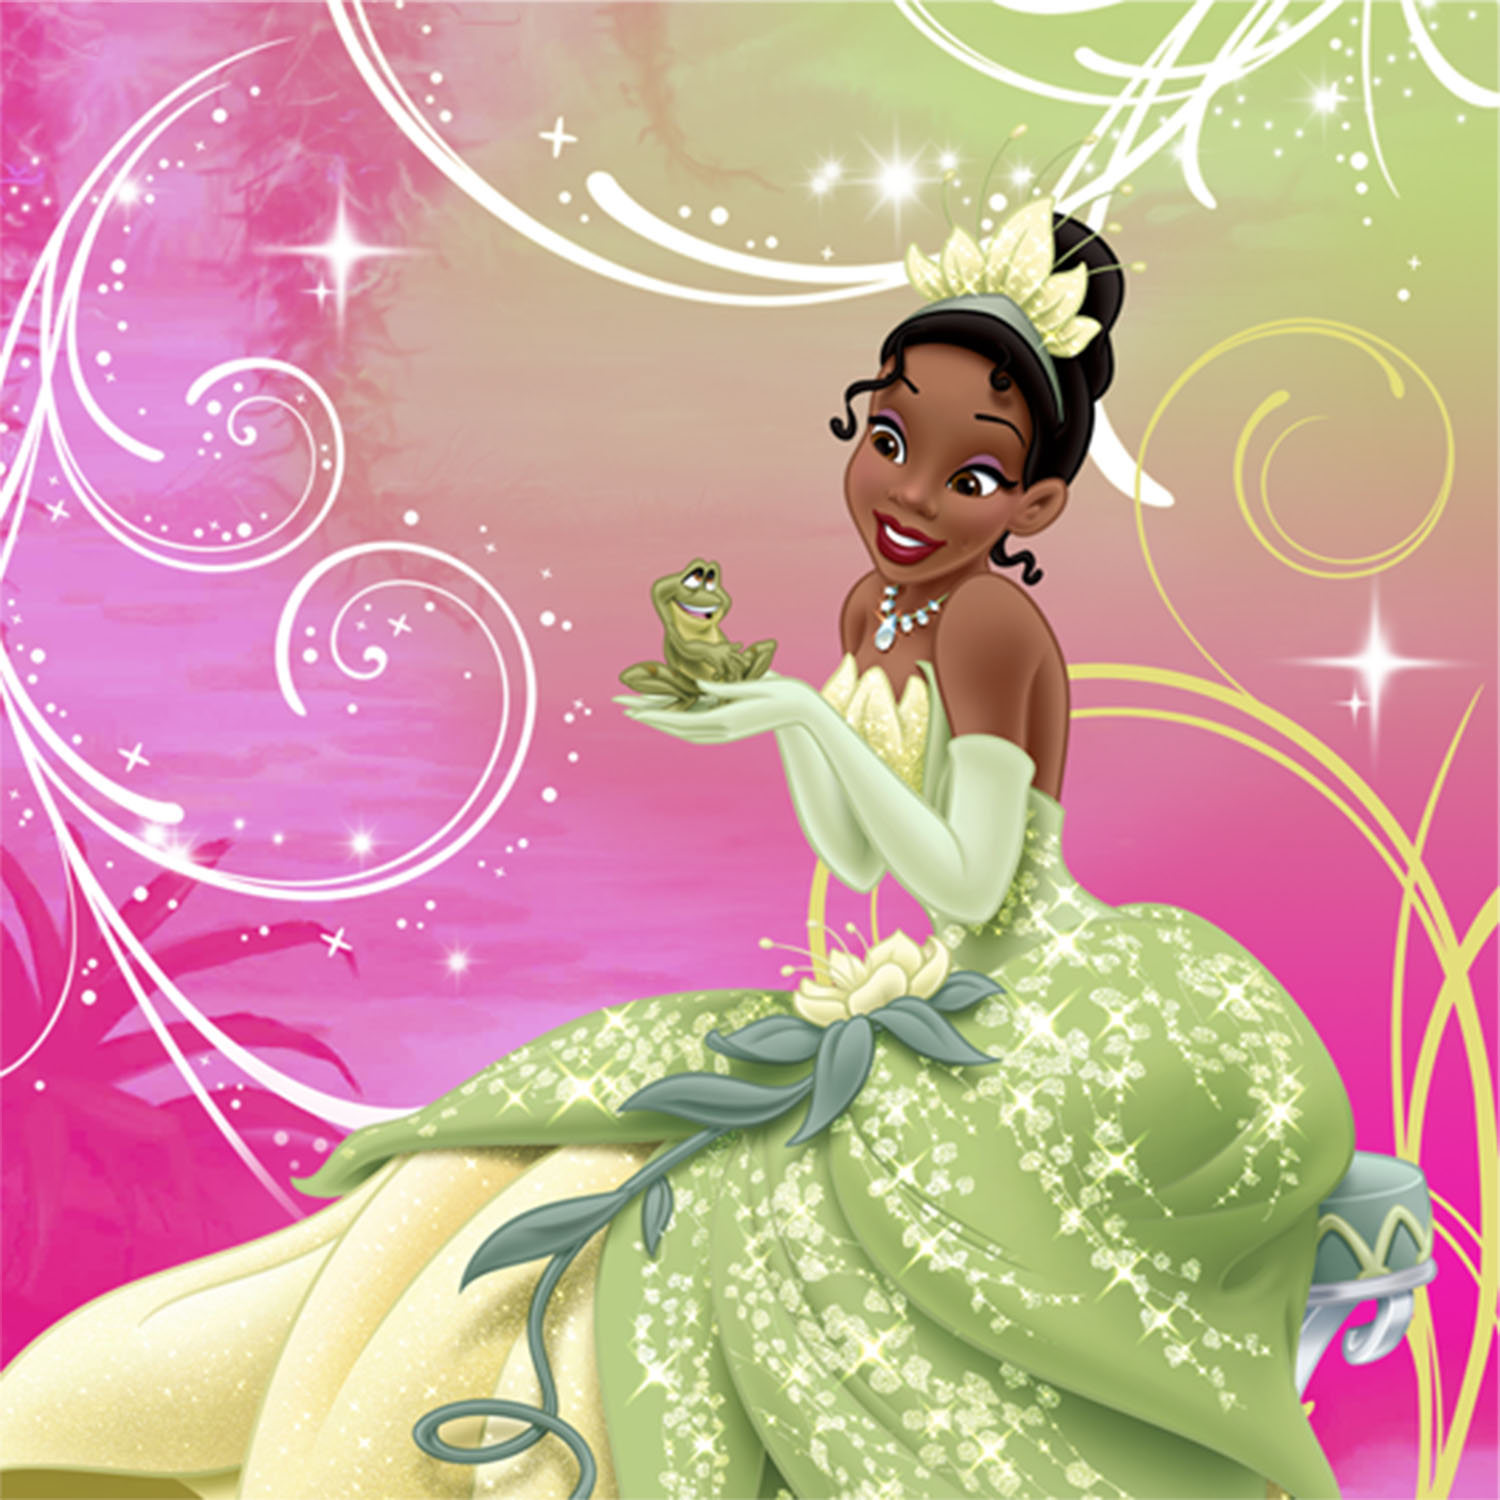 princess and the frog sparkle party supplies   beverage